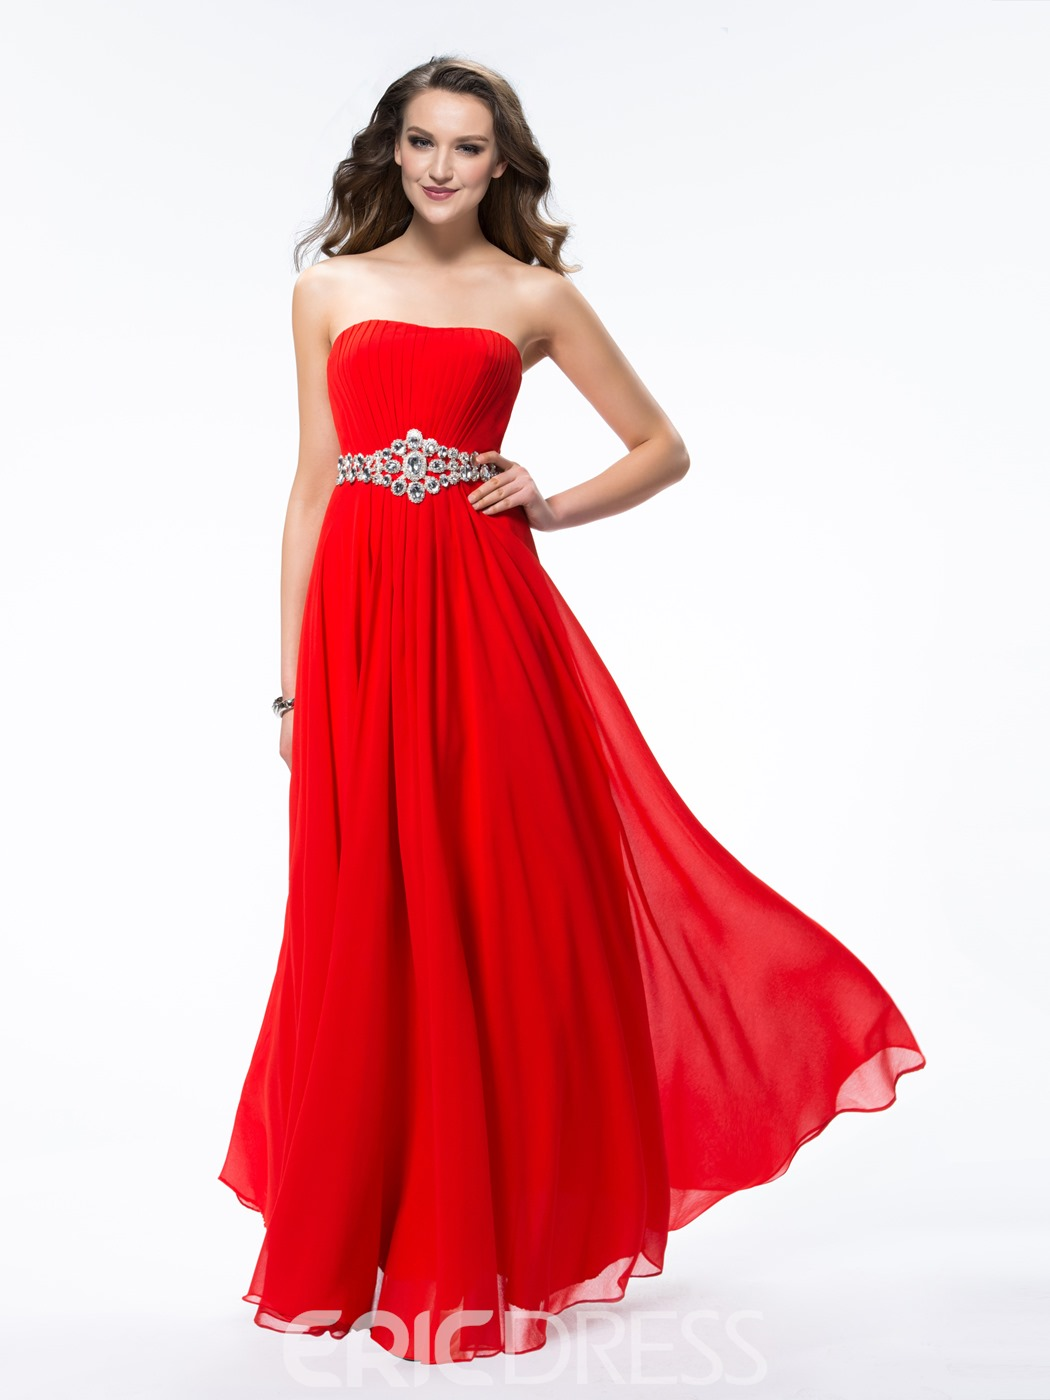 Amazing A-Line Strapless Crystal Zipper-up Floor-Length Prom Dress